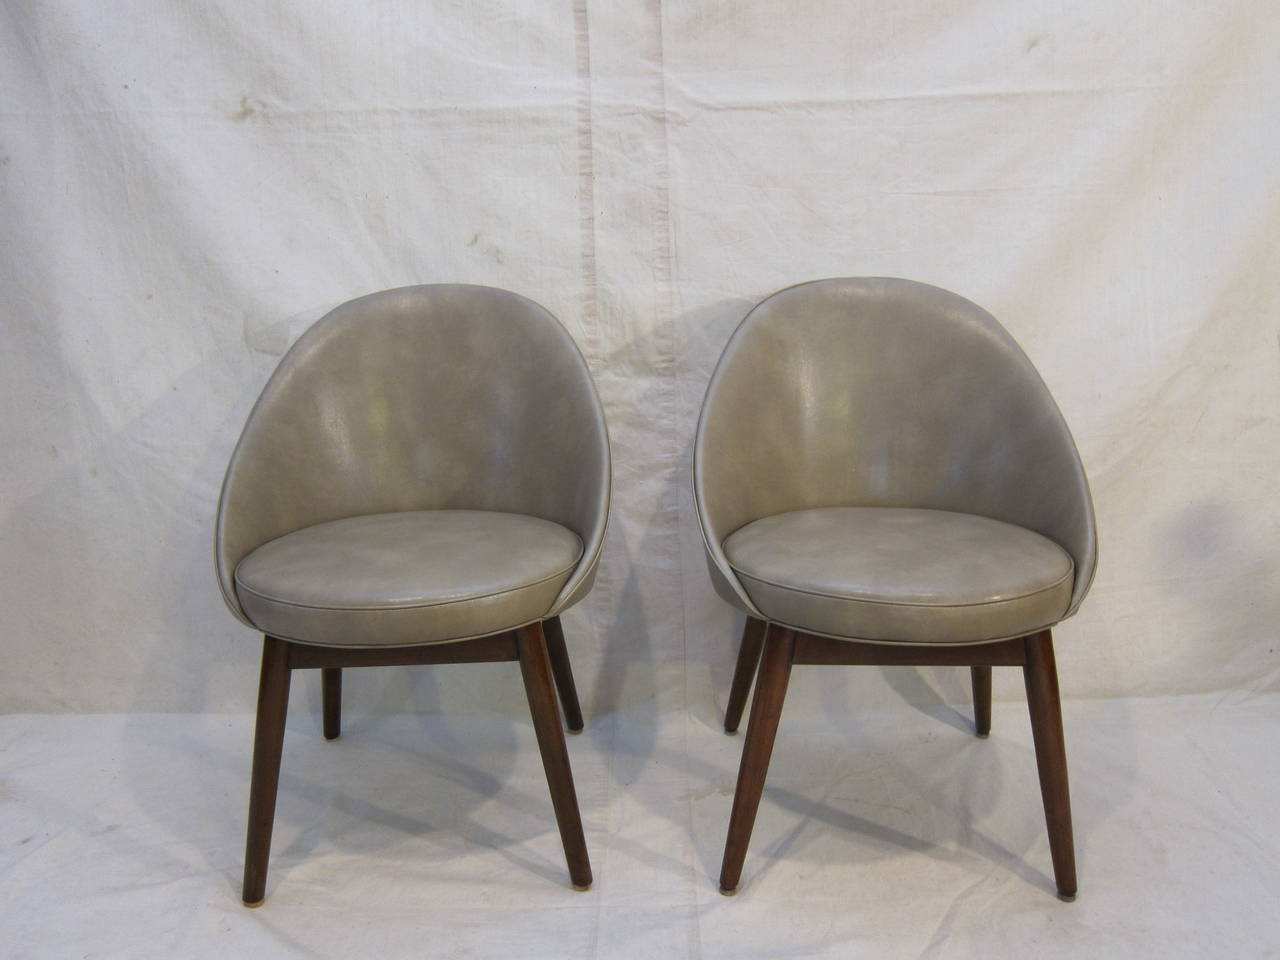 Pair of Danish Chairs Attributed to Ejvind Johansson In Excellent Condition For Sale In New York, NY